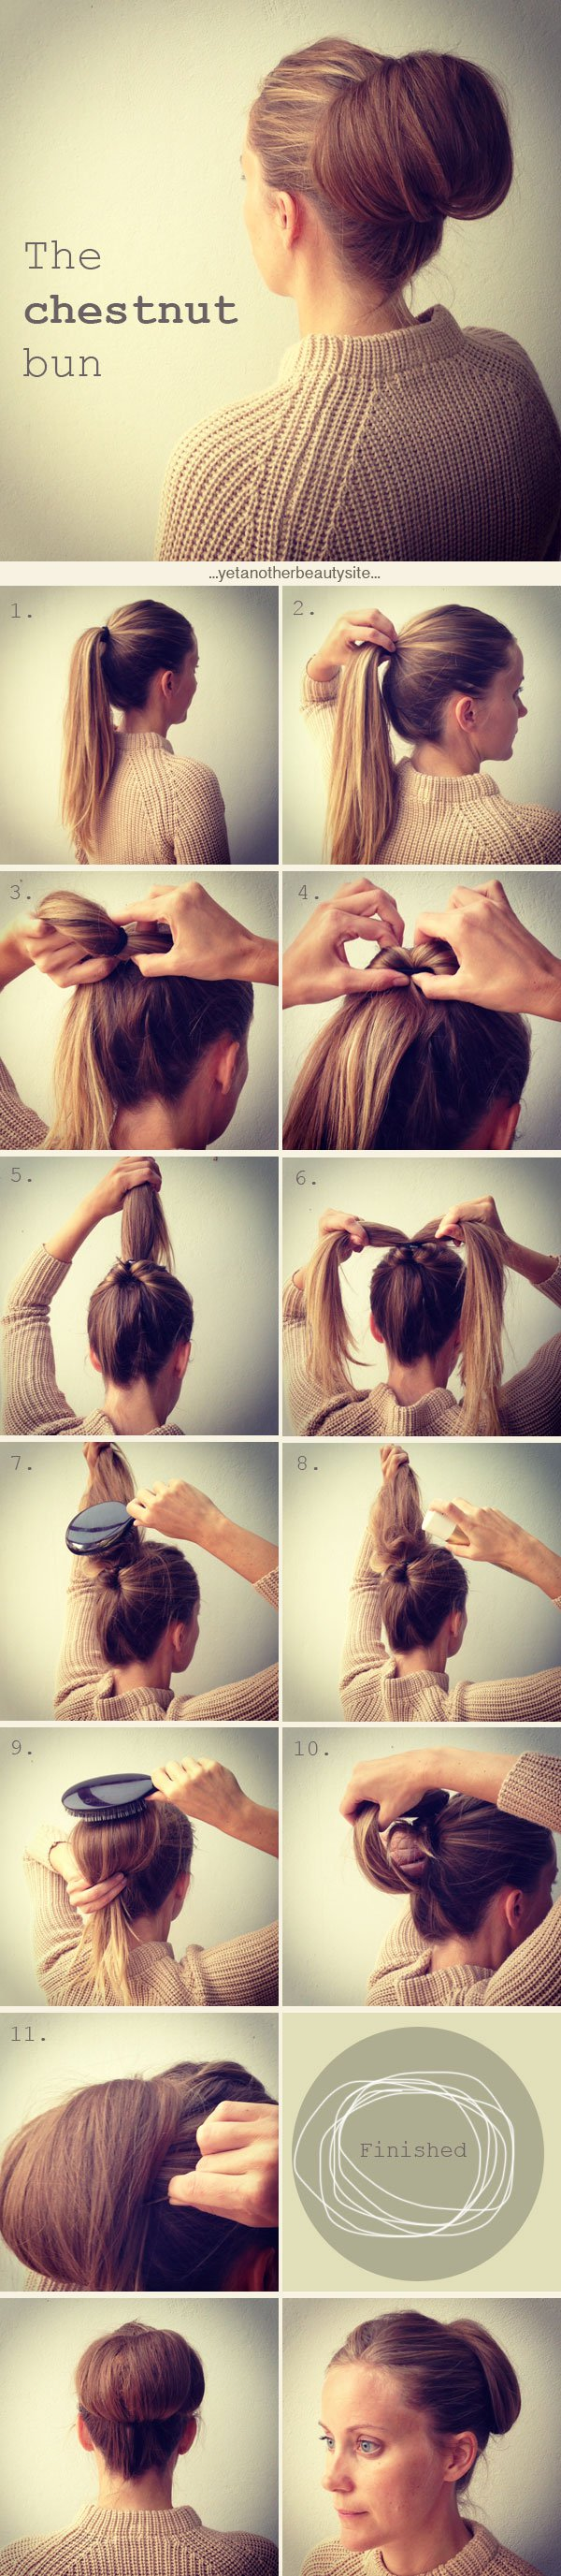 16 Easy and Quick Hairstyles with Tutorials Pretty Designs